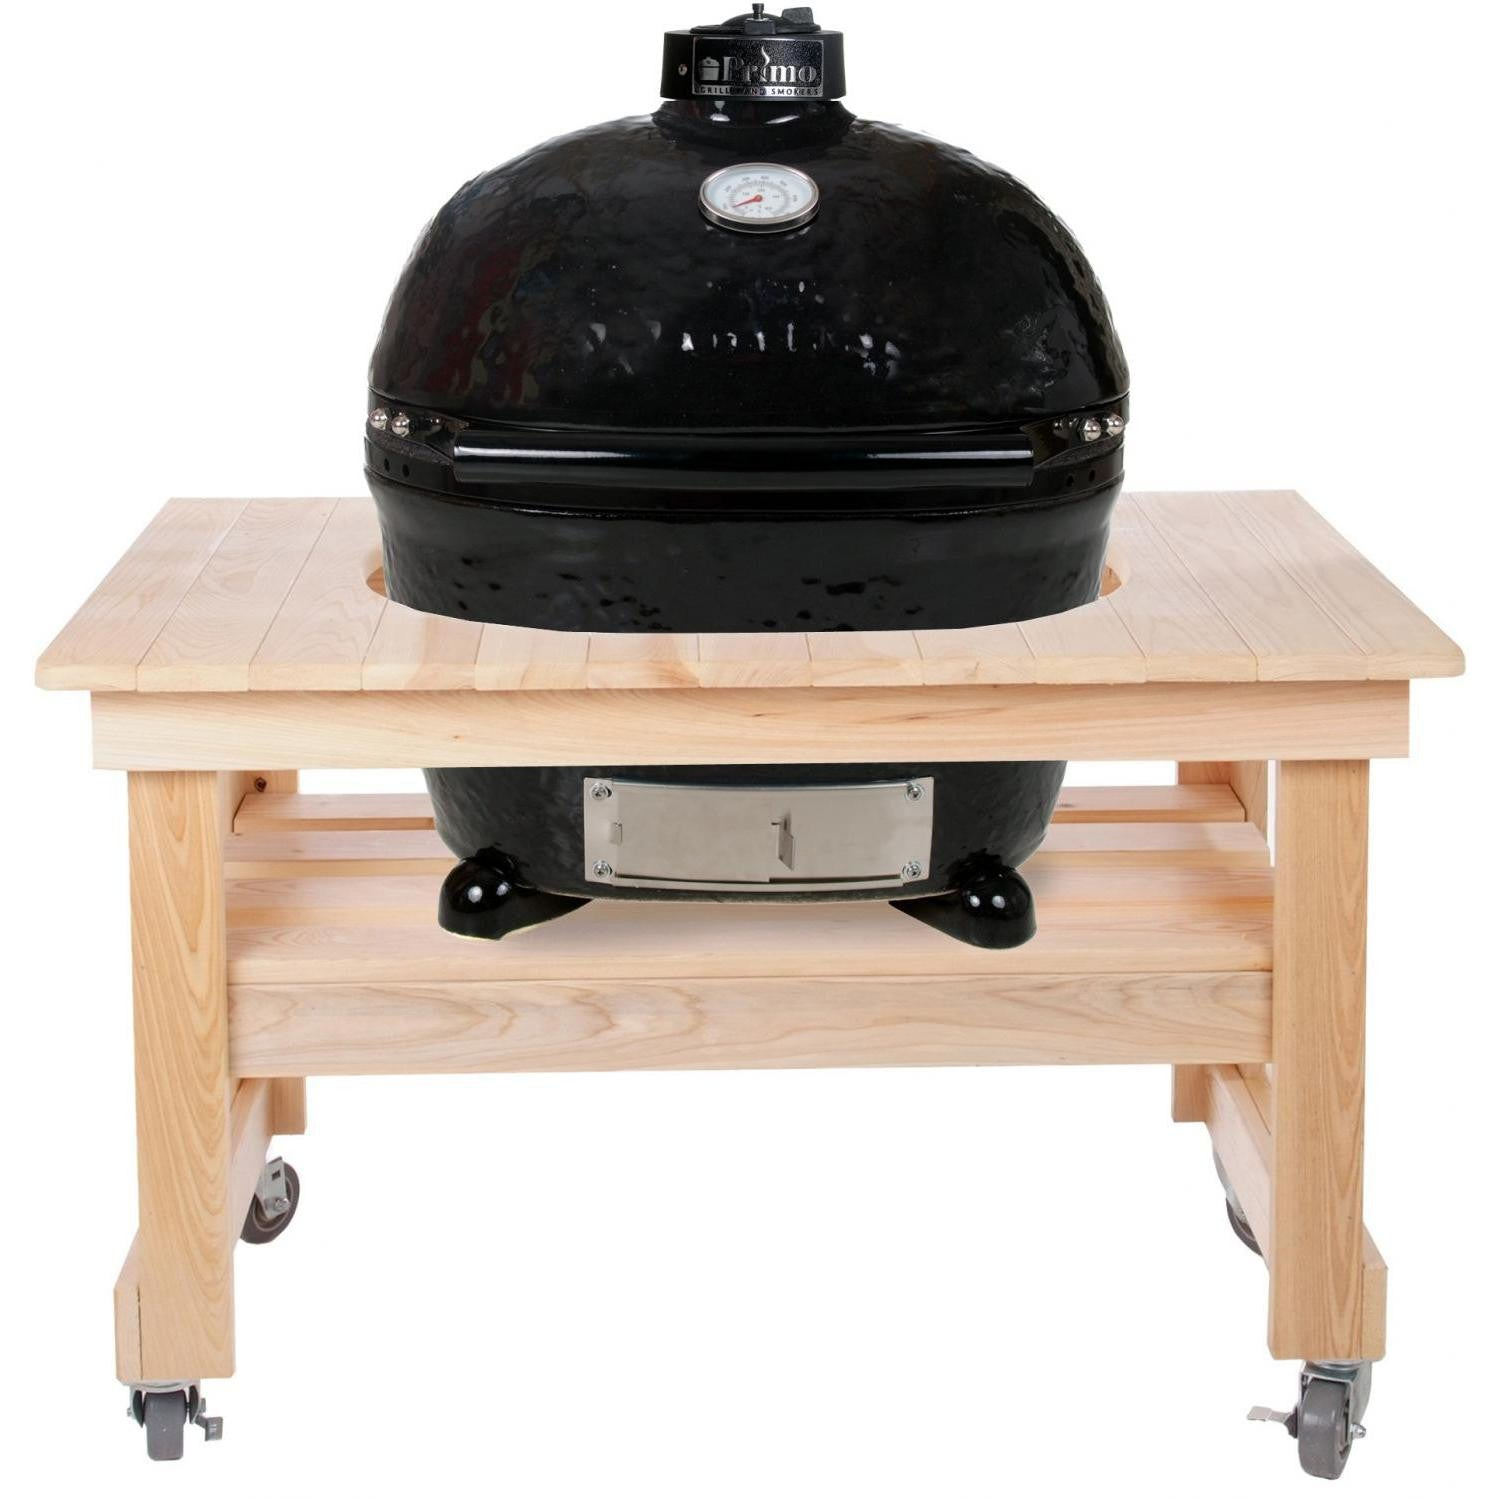 primo ceramic charcoal kamado grill oval xl 400 w compact